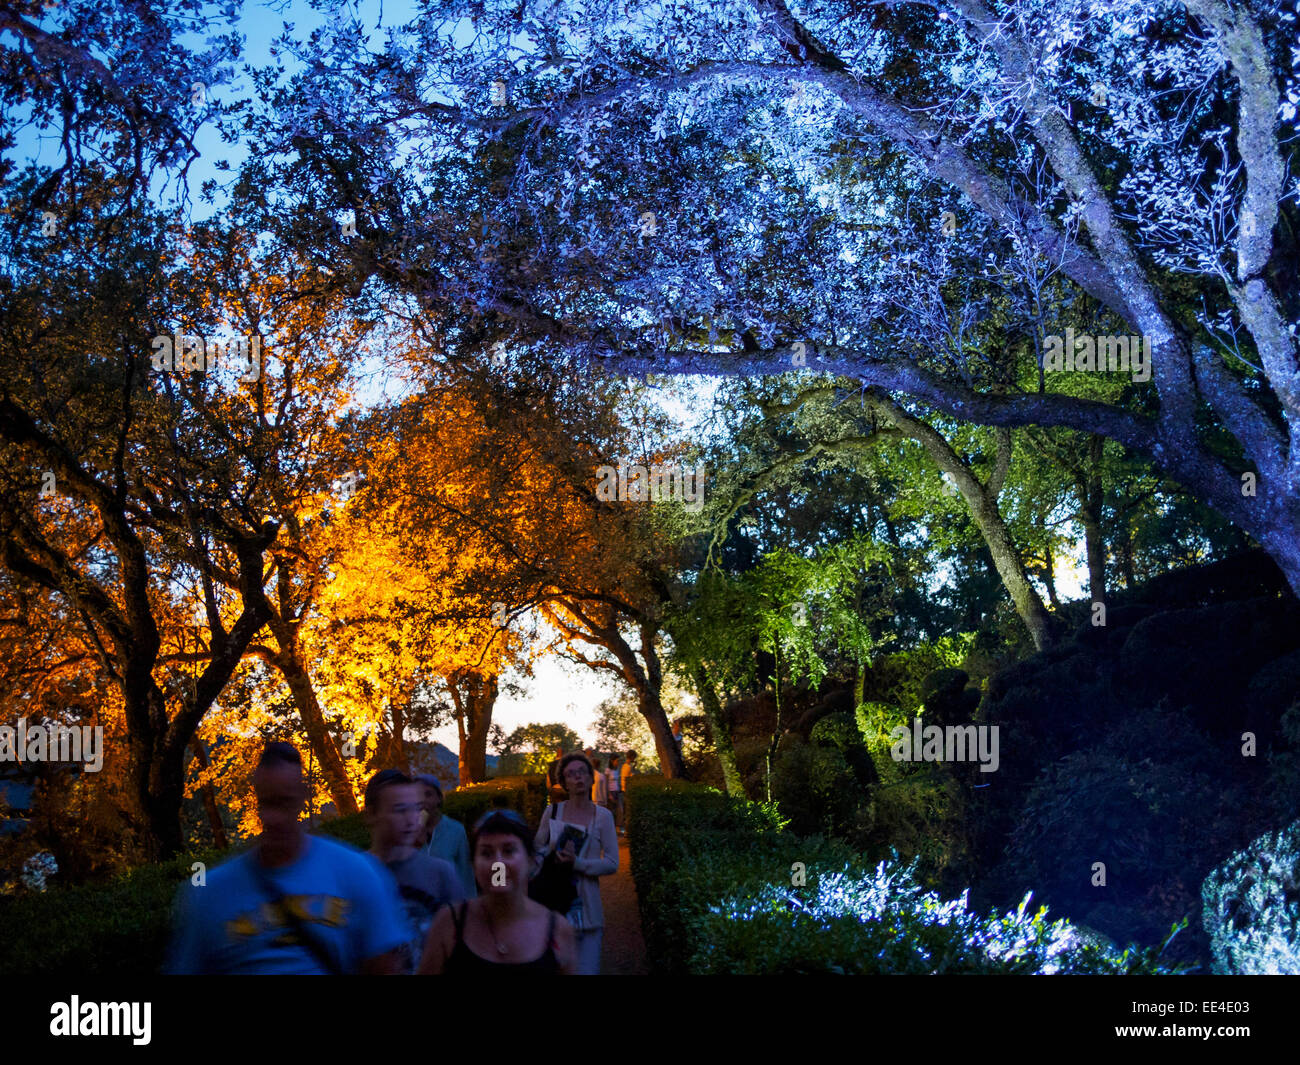 Visitors to a candlelight night at the gardens of Chateau Marqueyssac walk through the illuminated parks at dusk. - Stock Image